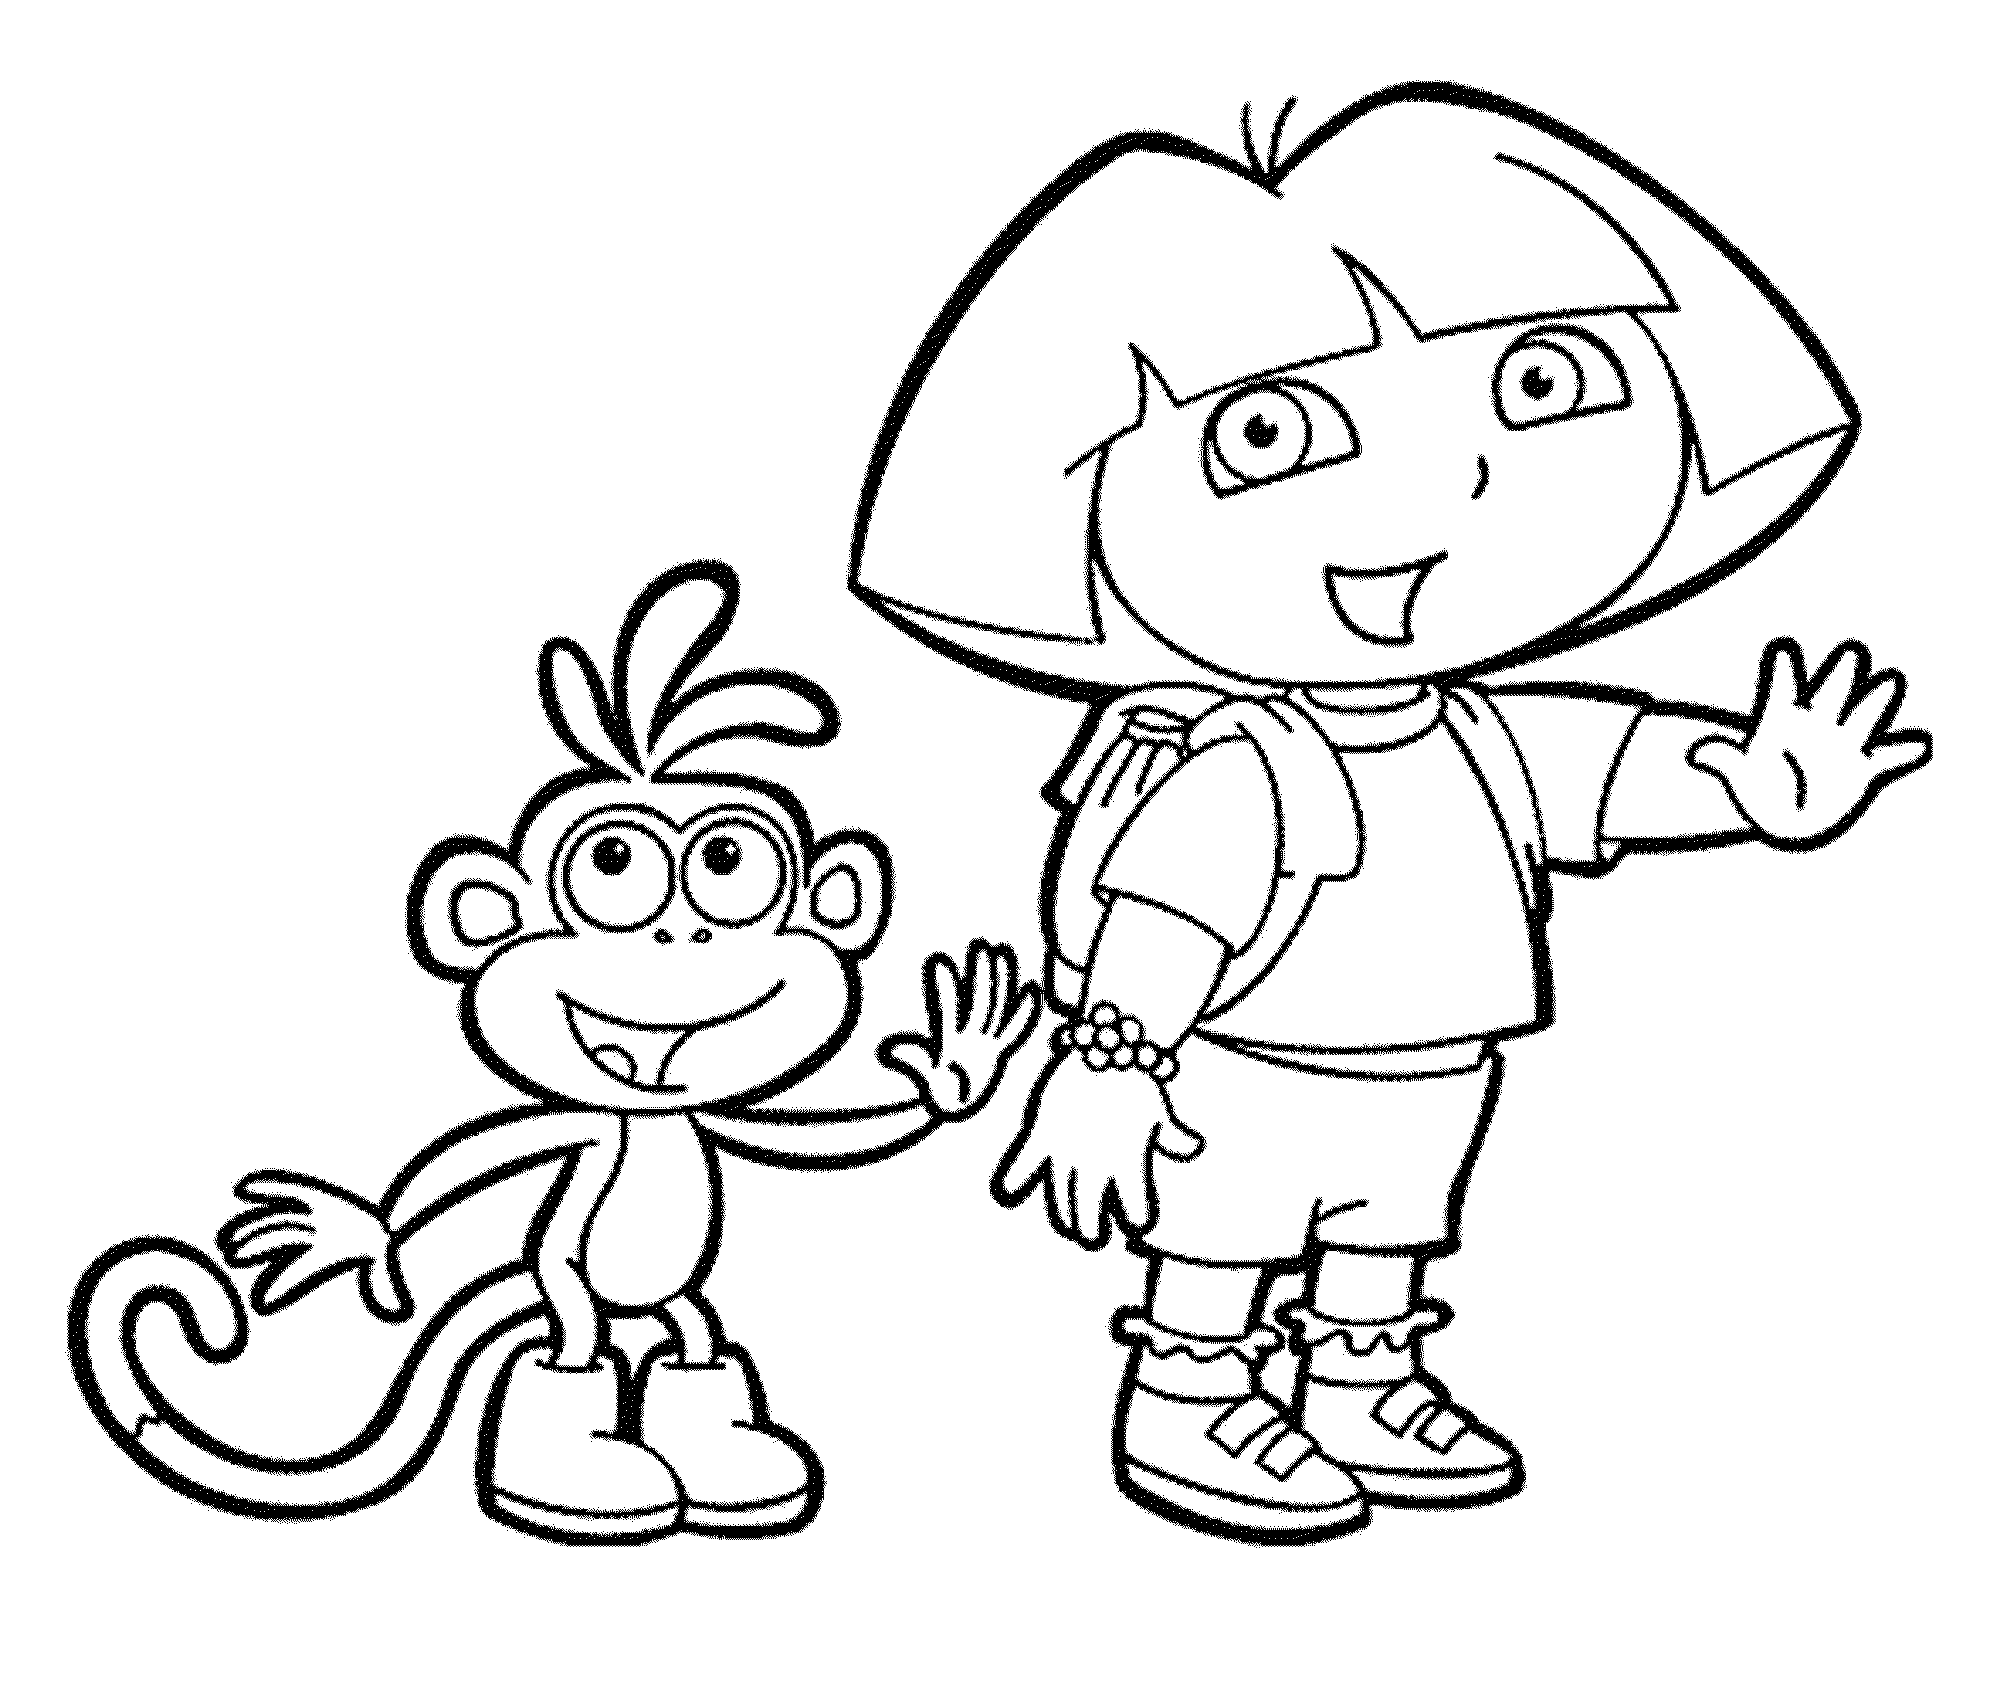 Print & Download - Dora Coloring Pages to Learn New Things